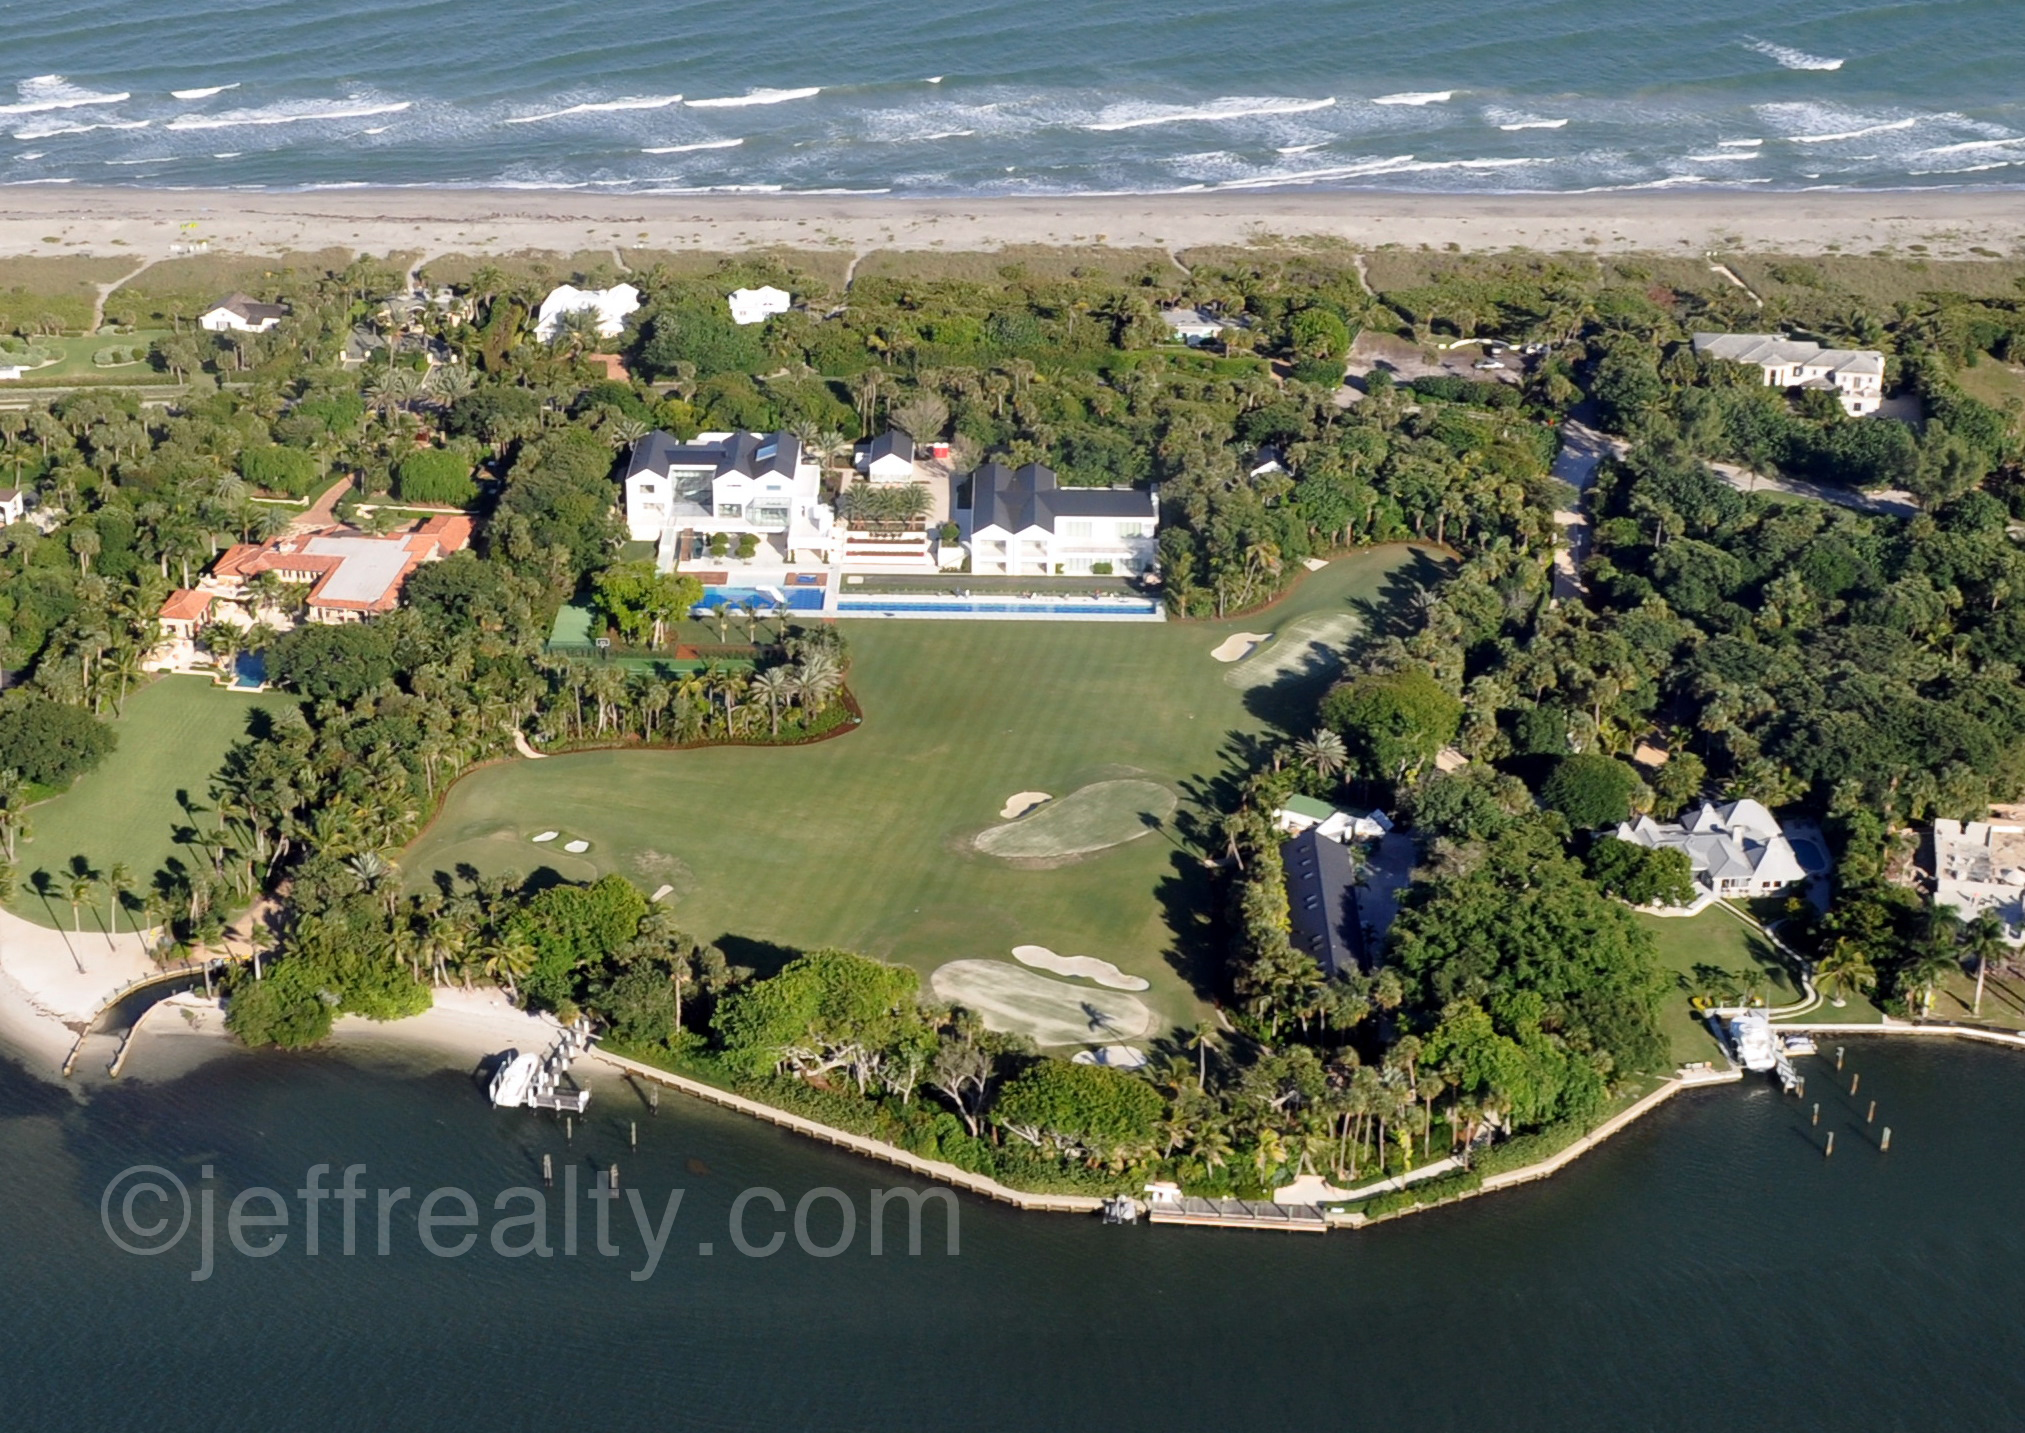 iger Woods estate home and practice golf course in Jupiter Island Florids